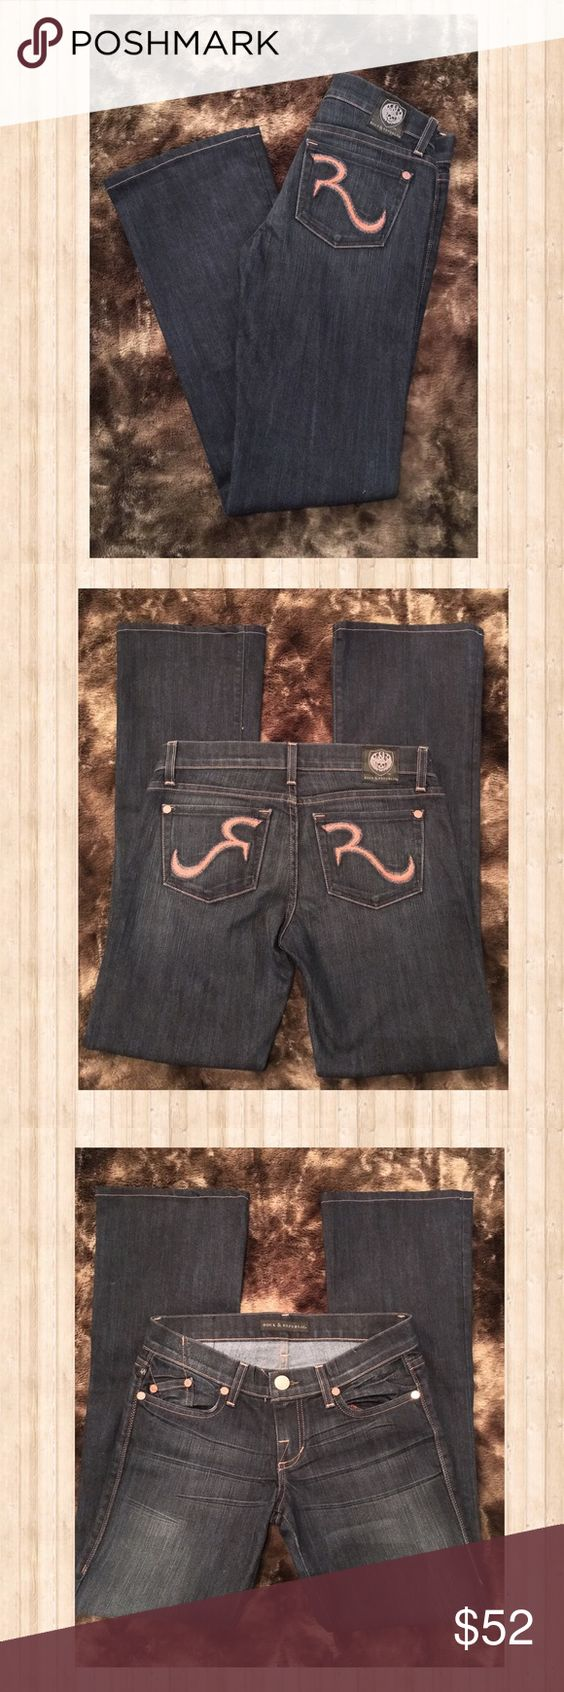 """Rock and Republic Dark Wash Bootcut Jeans Almost brand new, worn twice Rock and Republic bootcut jeans.  Has gorgeous Coral stitching on pockets with rose gold hardware on front and back pockets.  Are in excellent condition, size 26, 30"""" inseam.  These are gorgeous on!  Please let me know if you have any questions!  ( I do think that these do run small for a size 26 in my opinion, I can provide measurements upon request) Rock & Republic Jeans Boot Cut"""